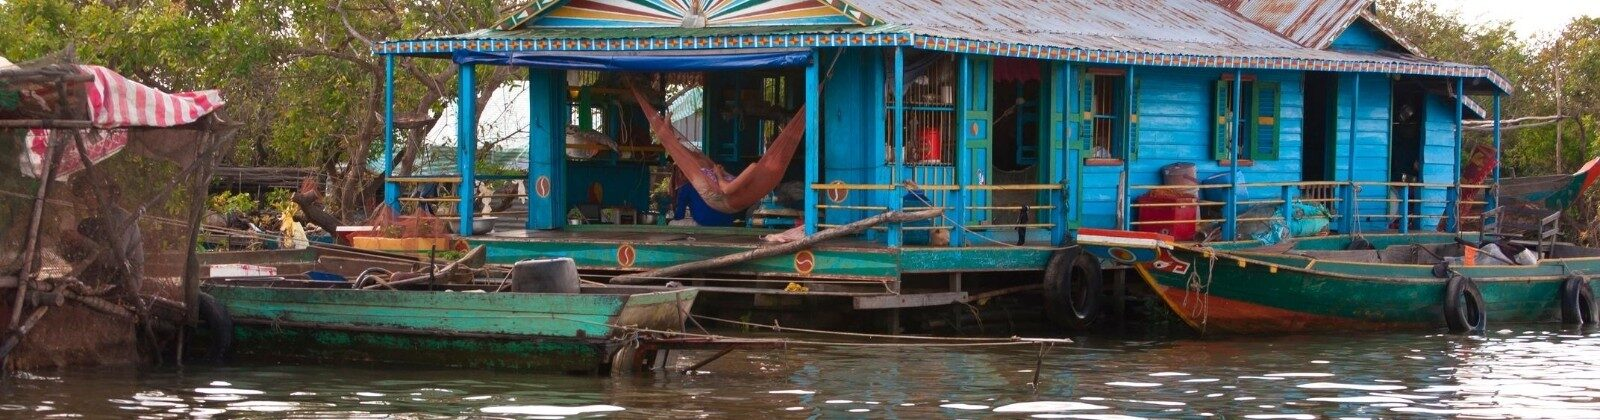 cambodia floating villages